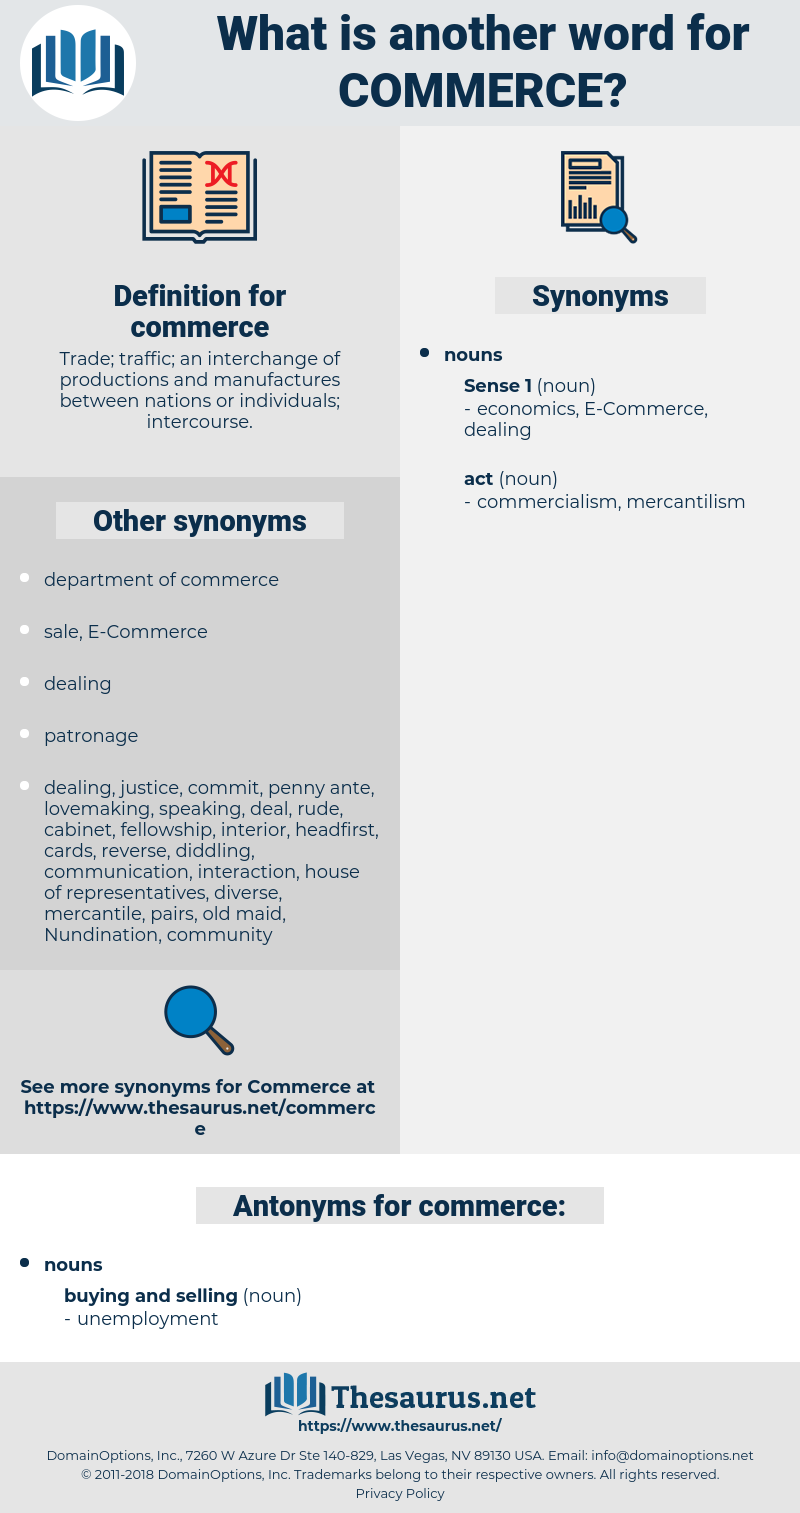 commerce, synonym commerce, another word for commerce, words like commerce, thesaurus commerce